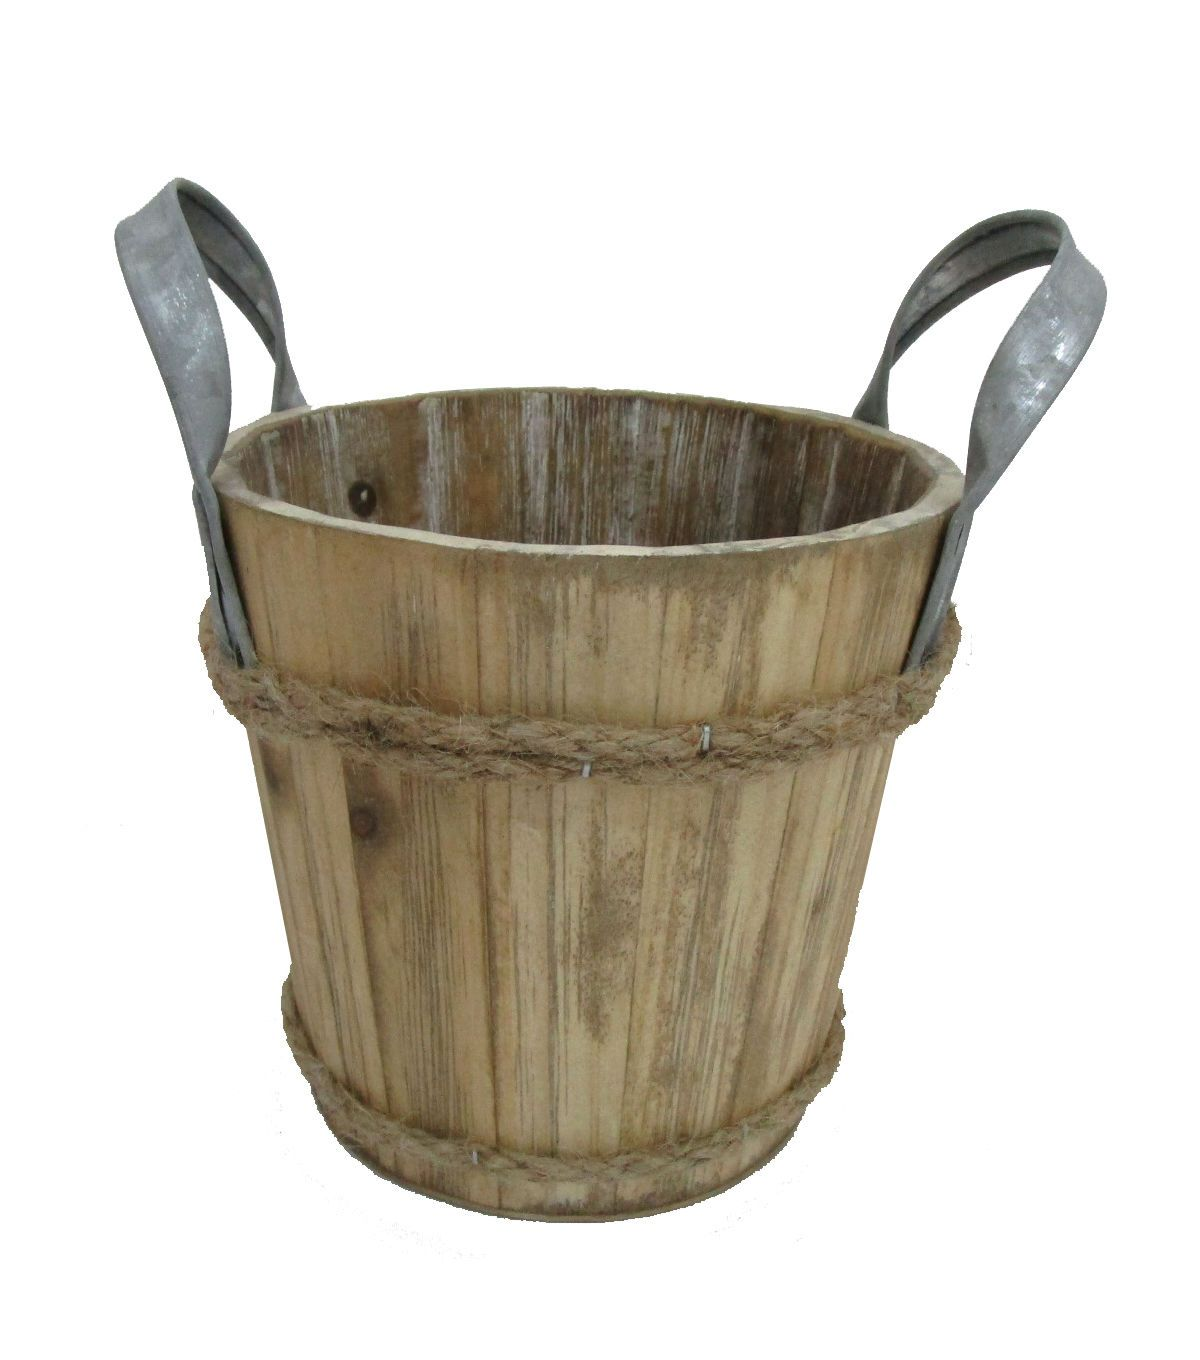 Blooming Autumn Small Wooden Bucket | Products | Pinterest